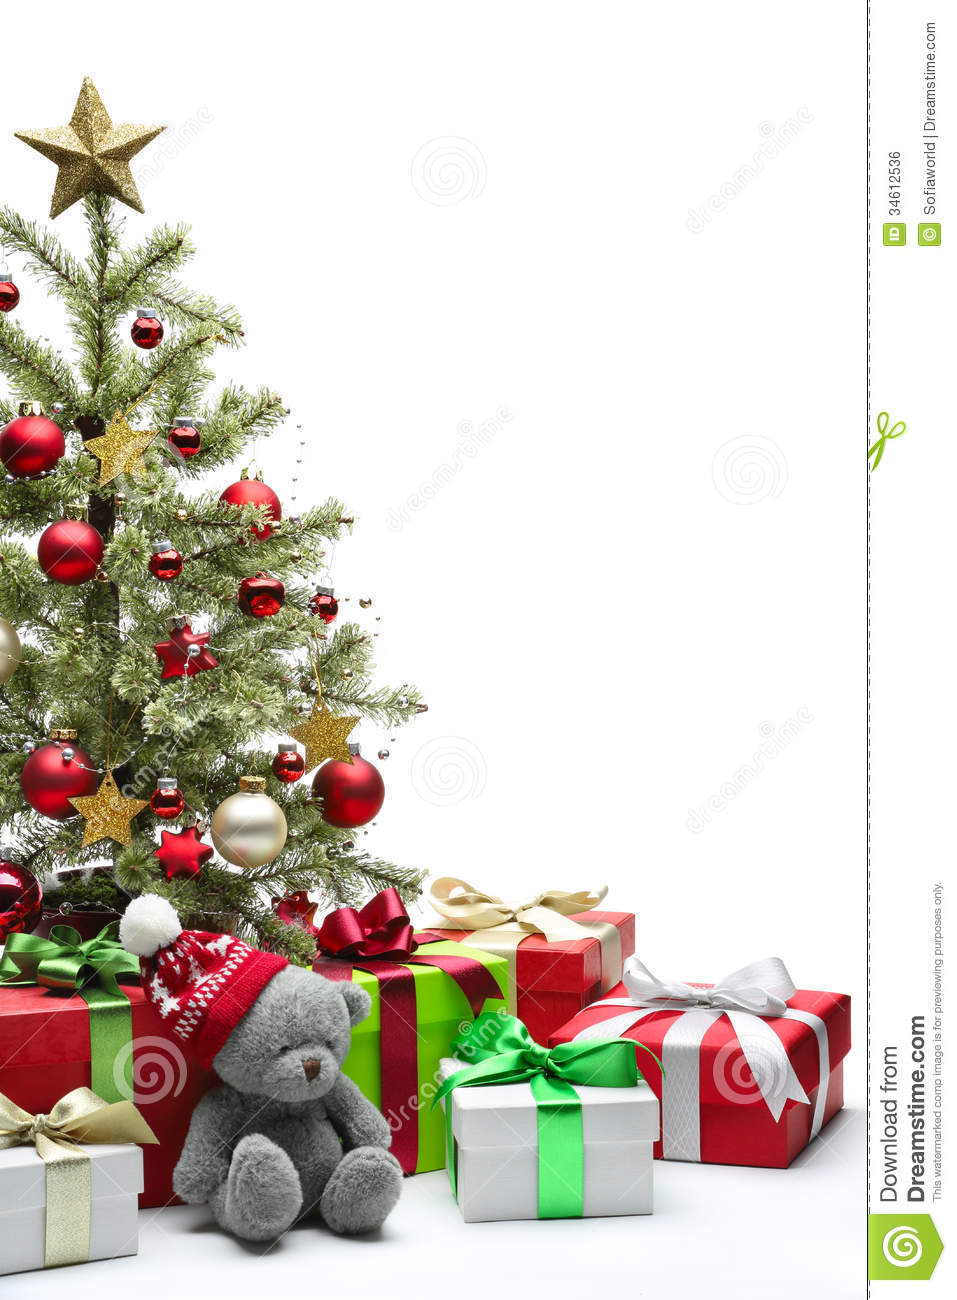 Decorated Christmas Tree And Gifts Stock Photo - Image of ...